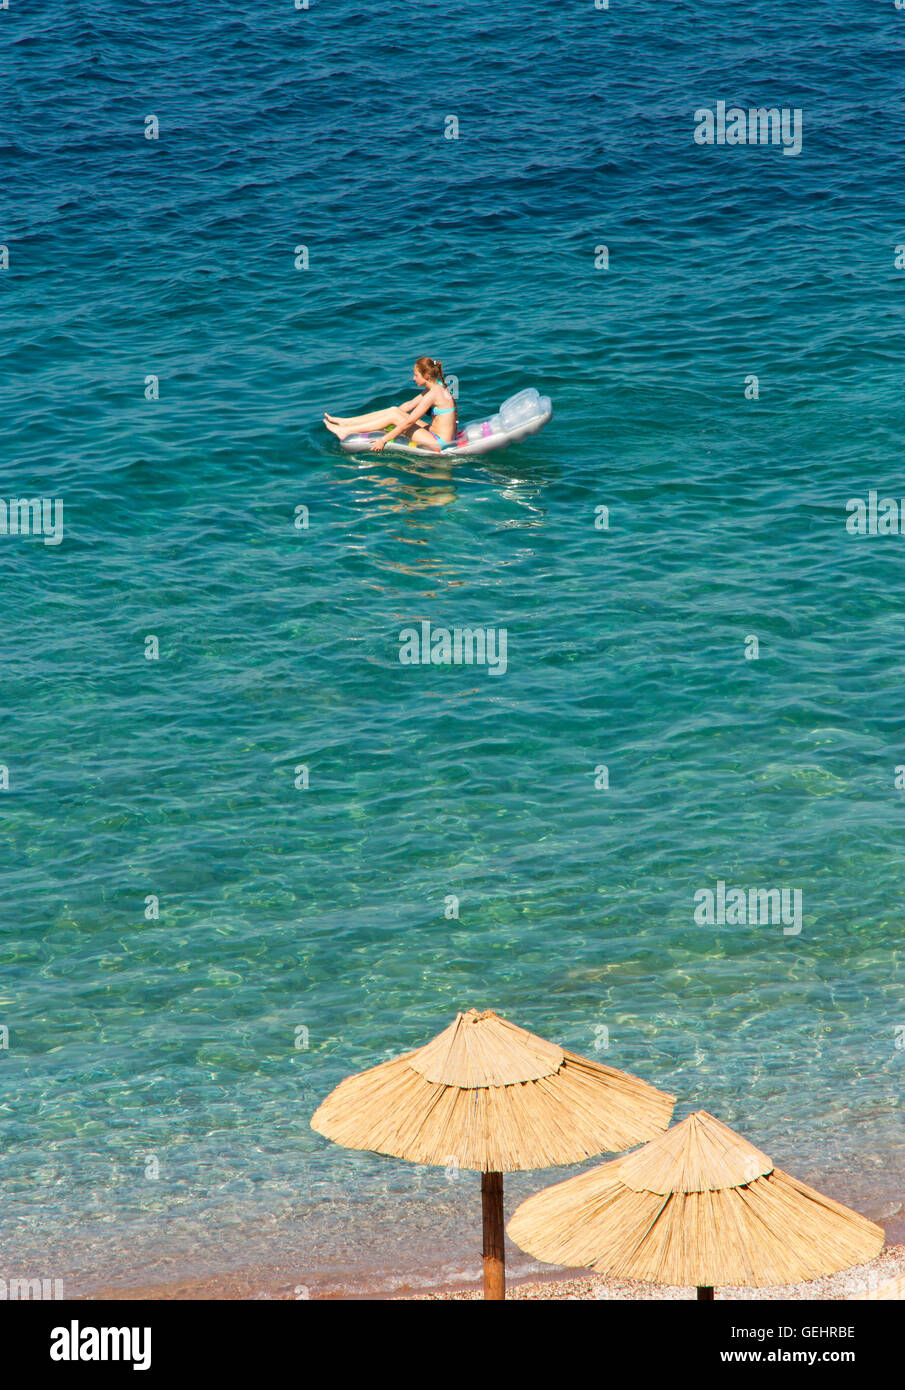 Young girl on inflatable beach mattress in the sea going away from the shore - Stock Image